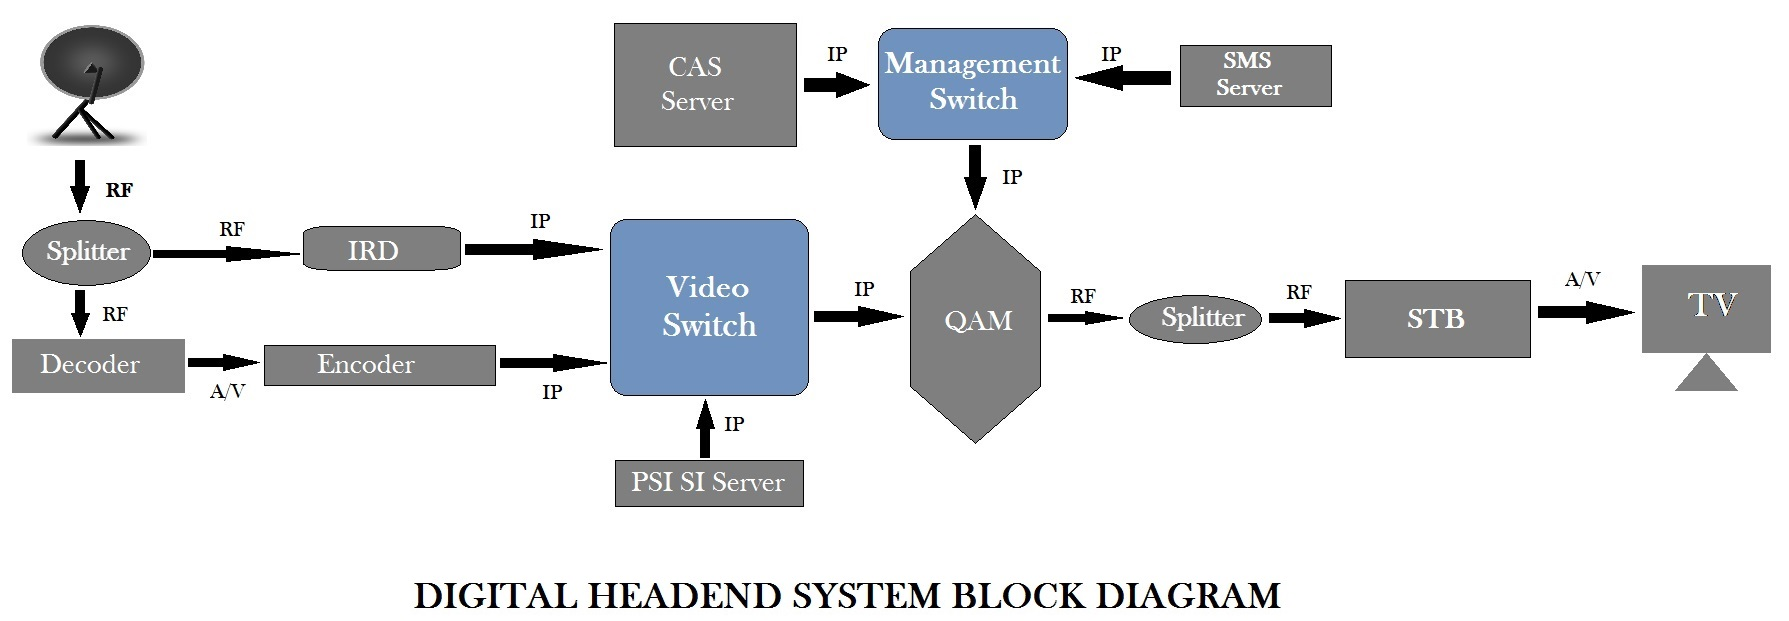 Dth Tv Diagram Mastering Wiring For Cable What Is Digital Headend Or System Rh Headendinfo Com Broadcast Television Network Direct